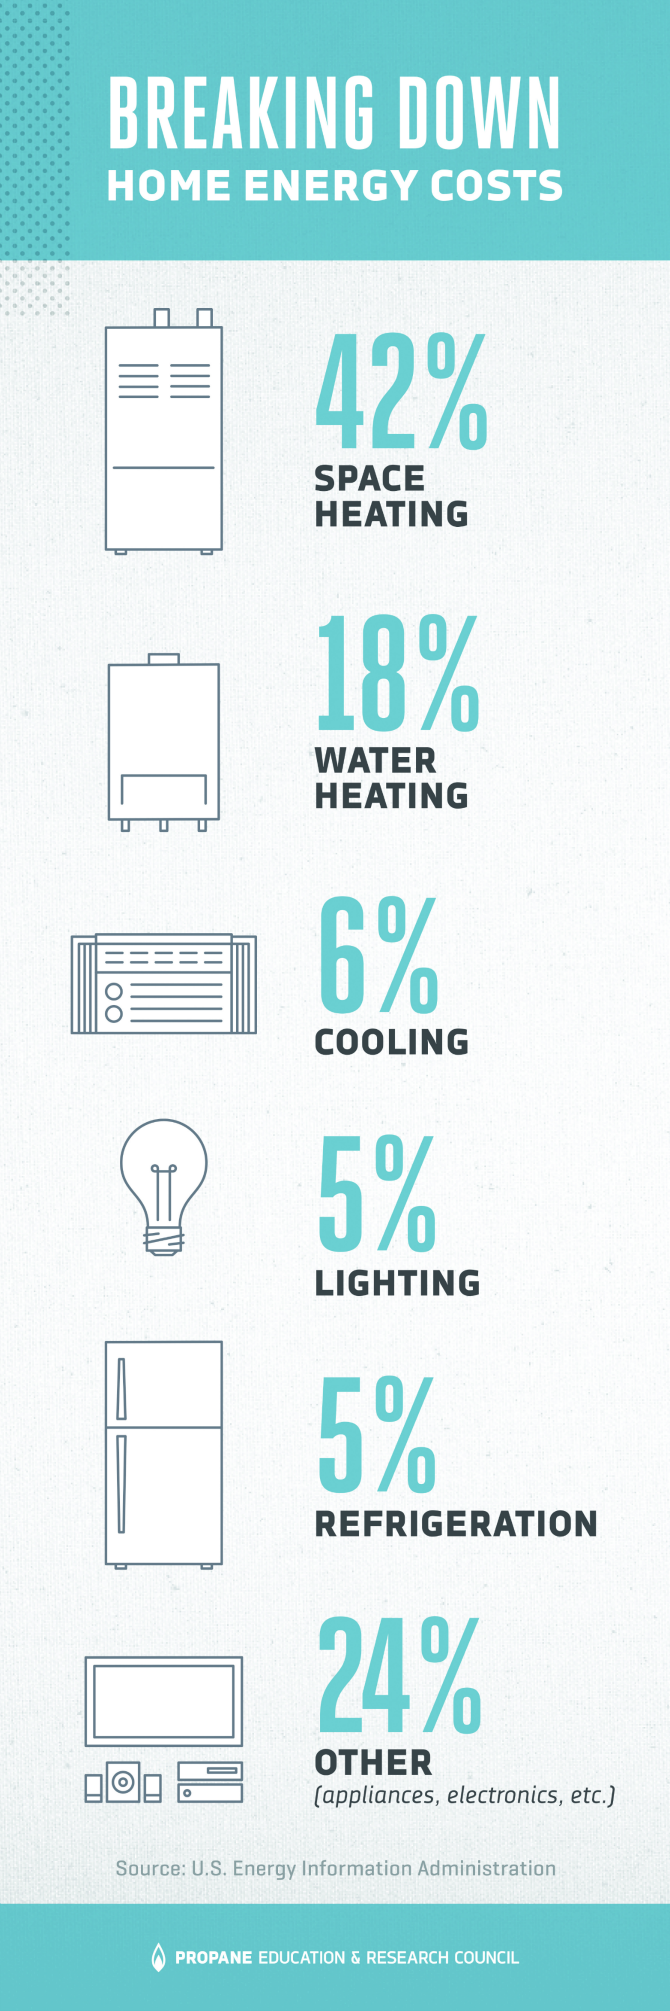 11 Hot Water Heater Tips That Can Save You Money - energy use per appliance home energy costs